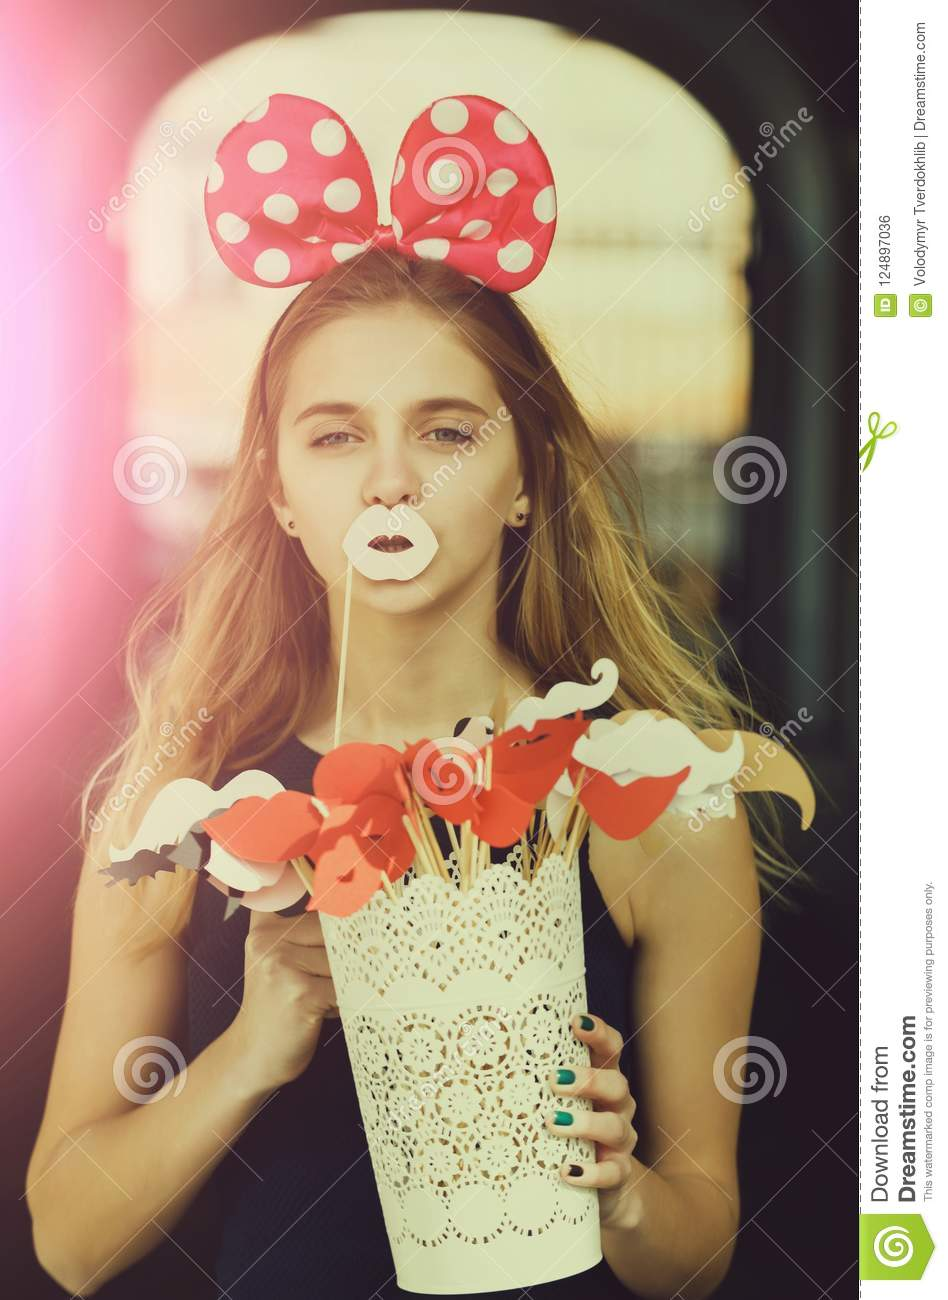 Decorative props on sticks. Funny pretty girl or young woman, teenager, with long, blond hair posing with cute mouse ears and paper white lips.